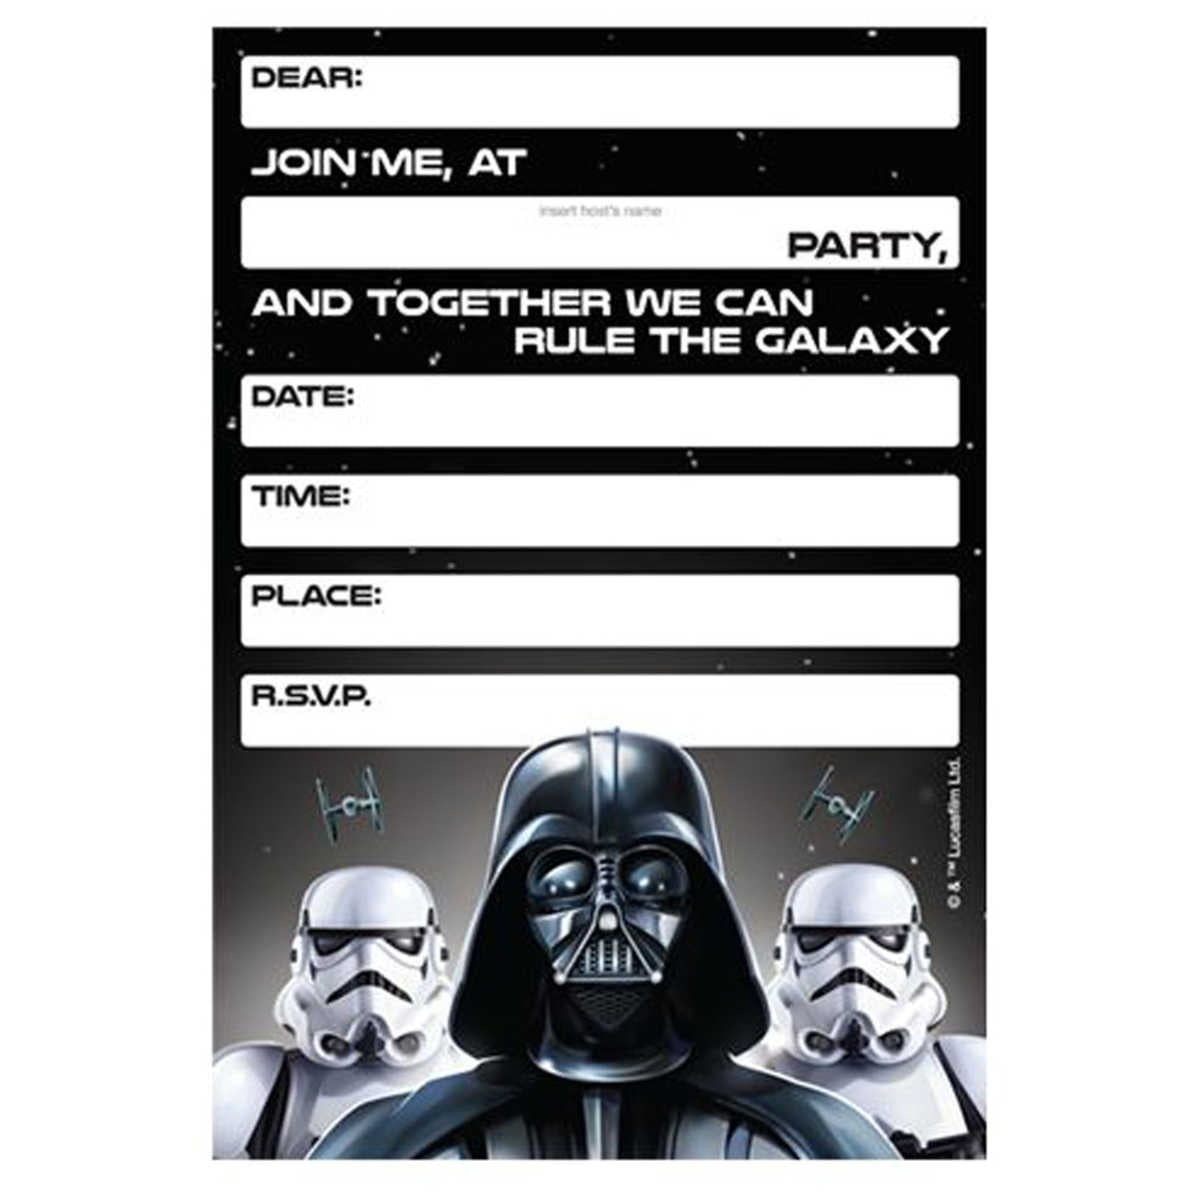 Lego Star Wars Birthday Invitations Template Bagvania